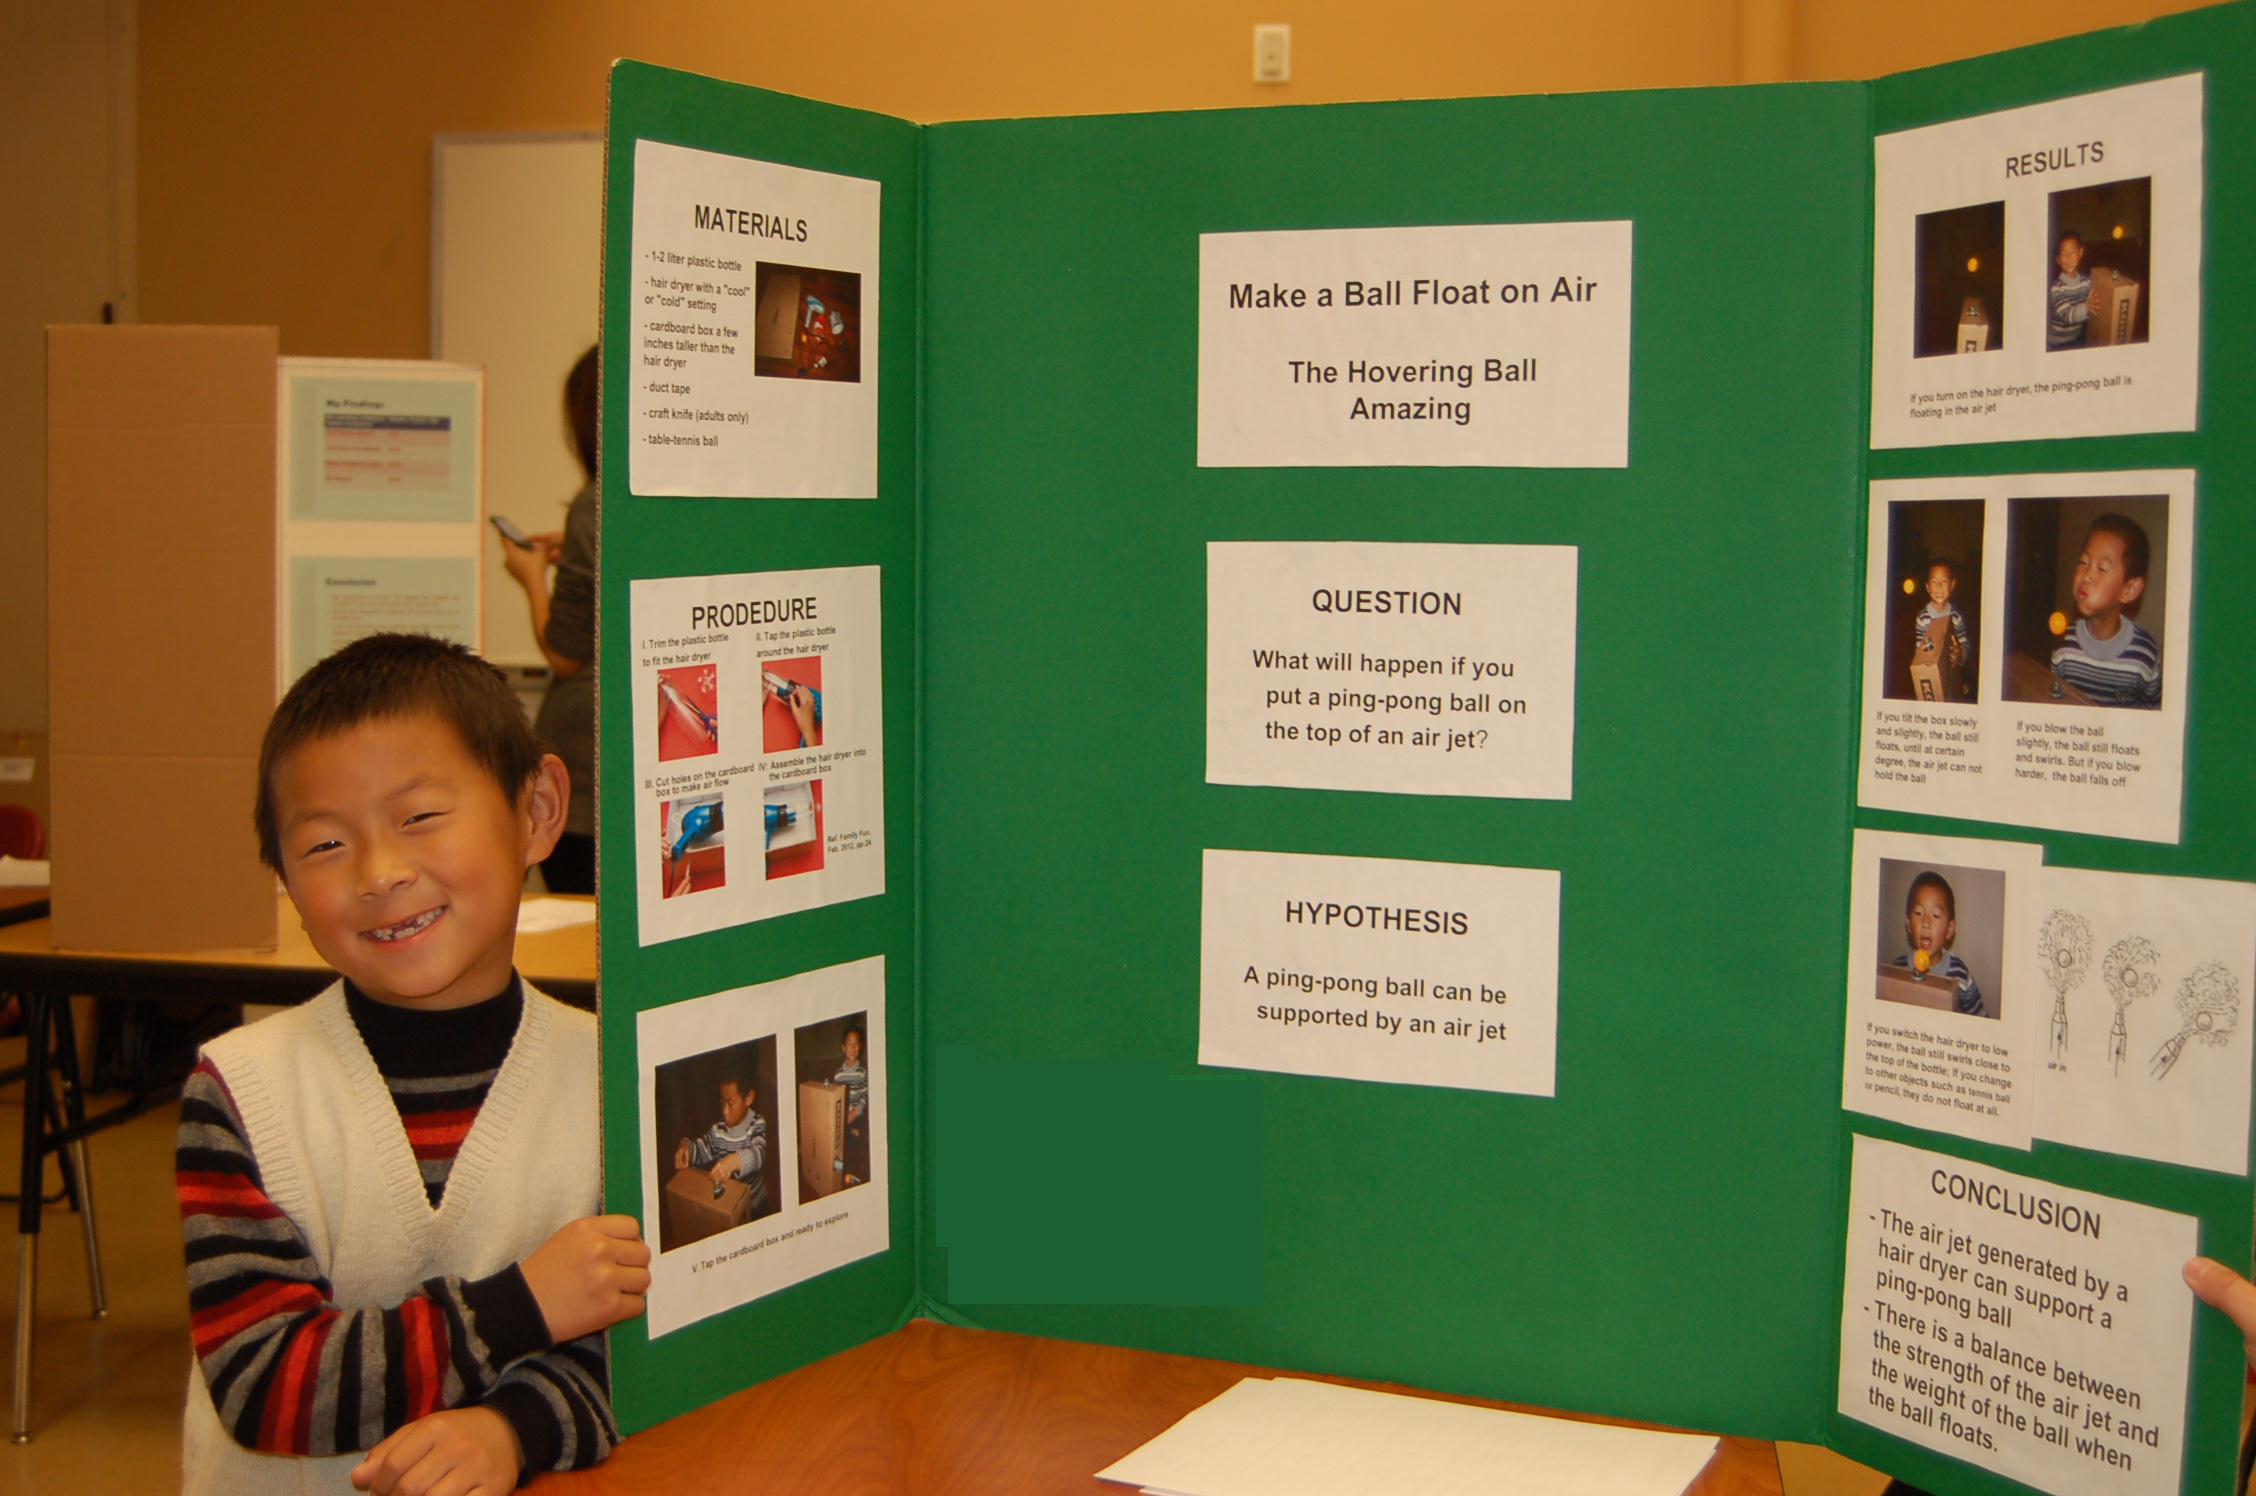 Green Elementary School Science Fair Inspires Student ...